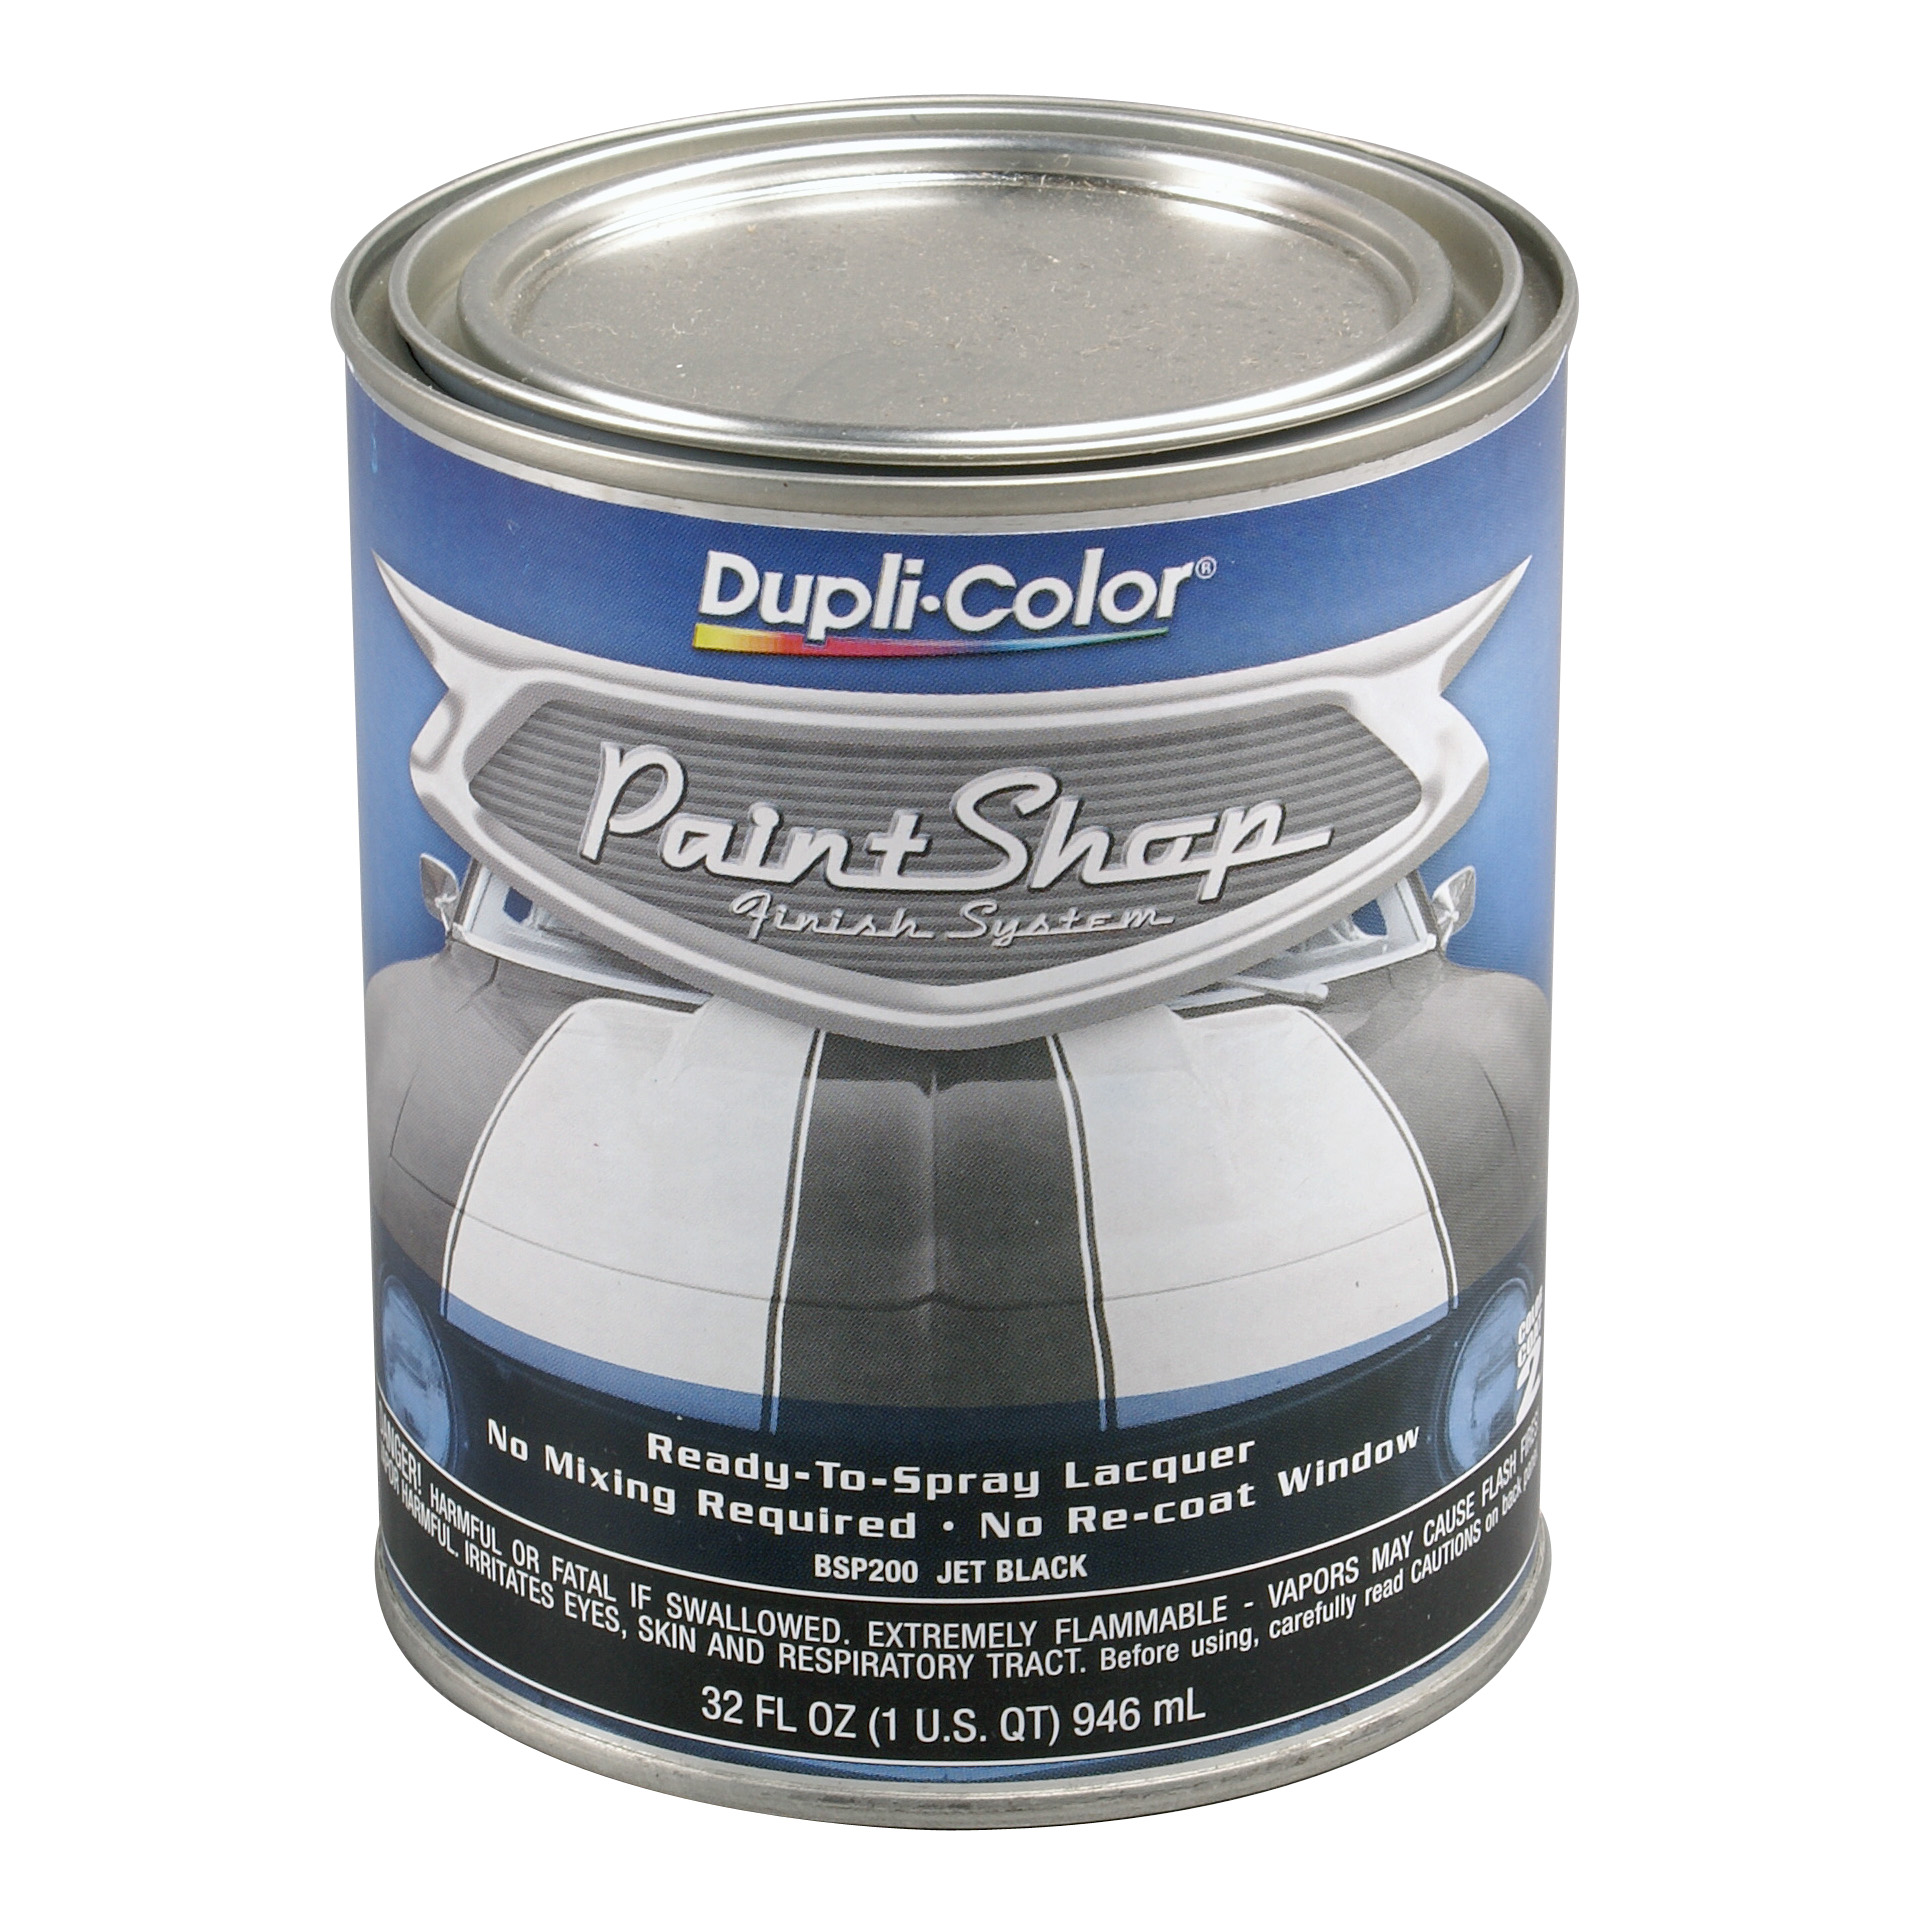 New at Summit Racing Equipment: Dupli-Color Paint Shop Finish Systems